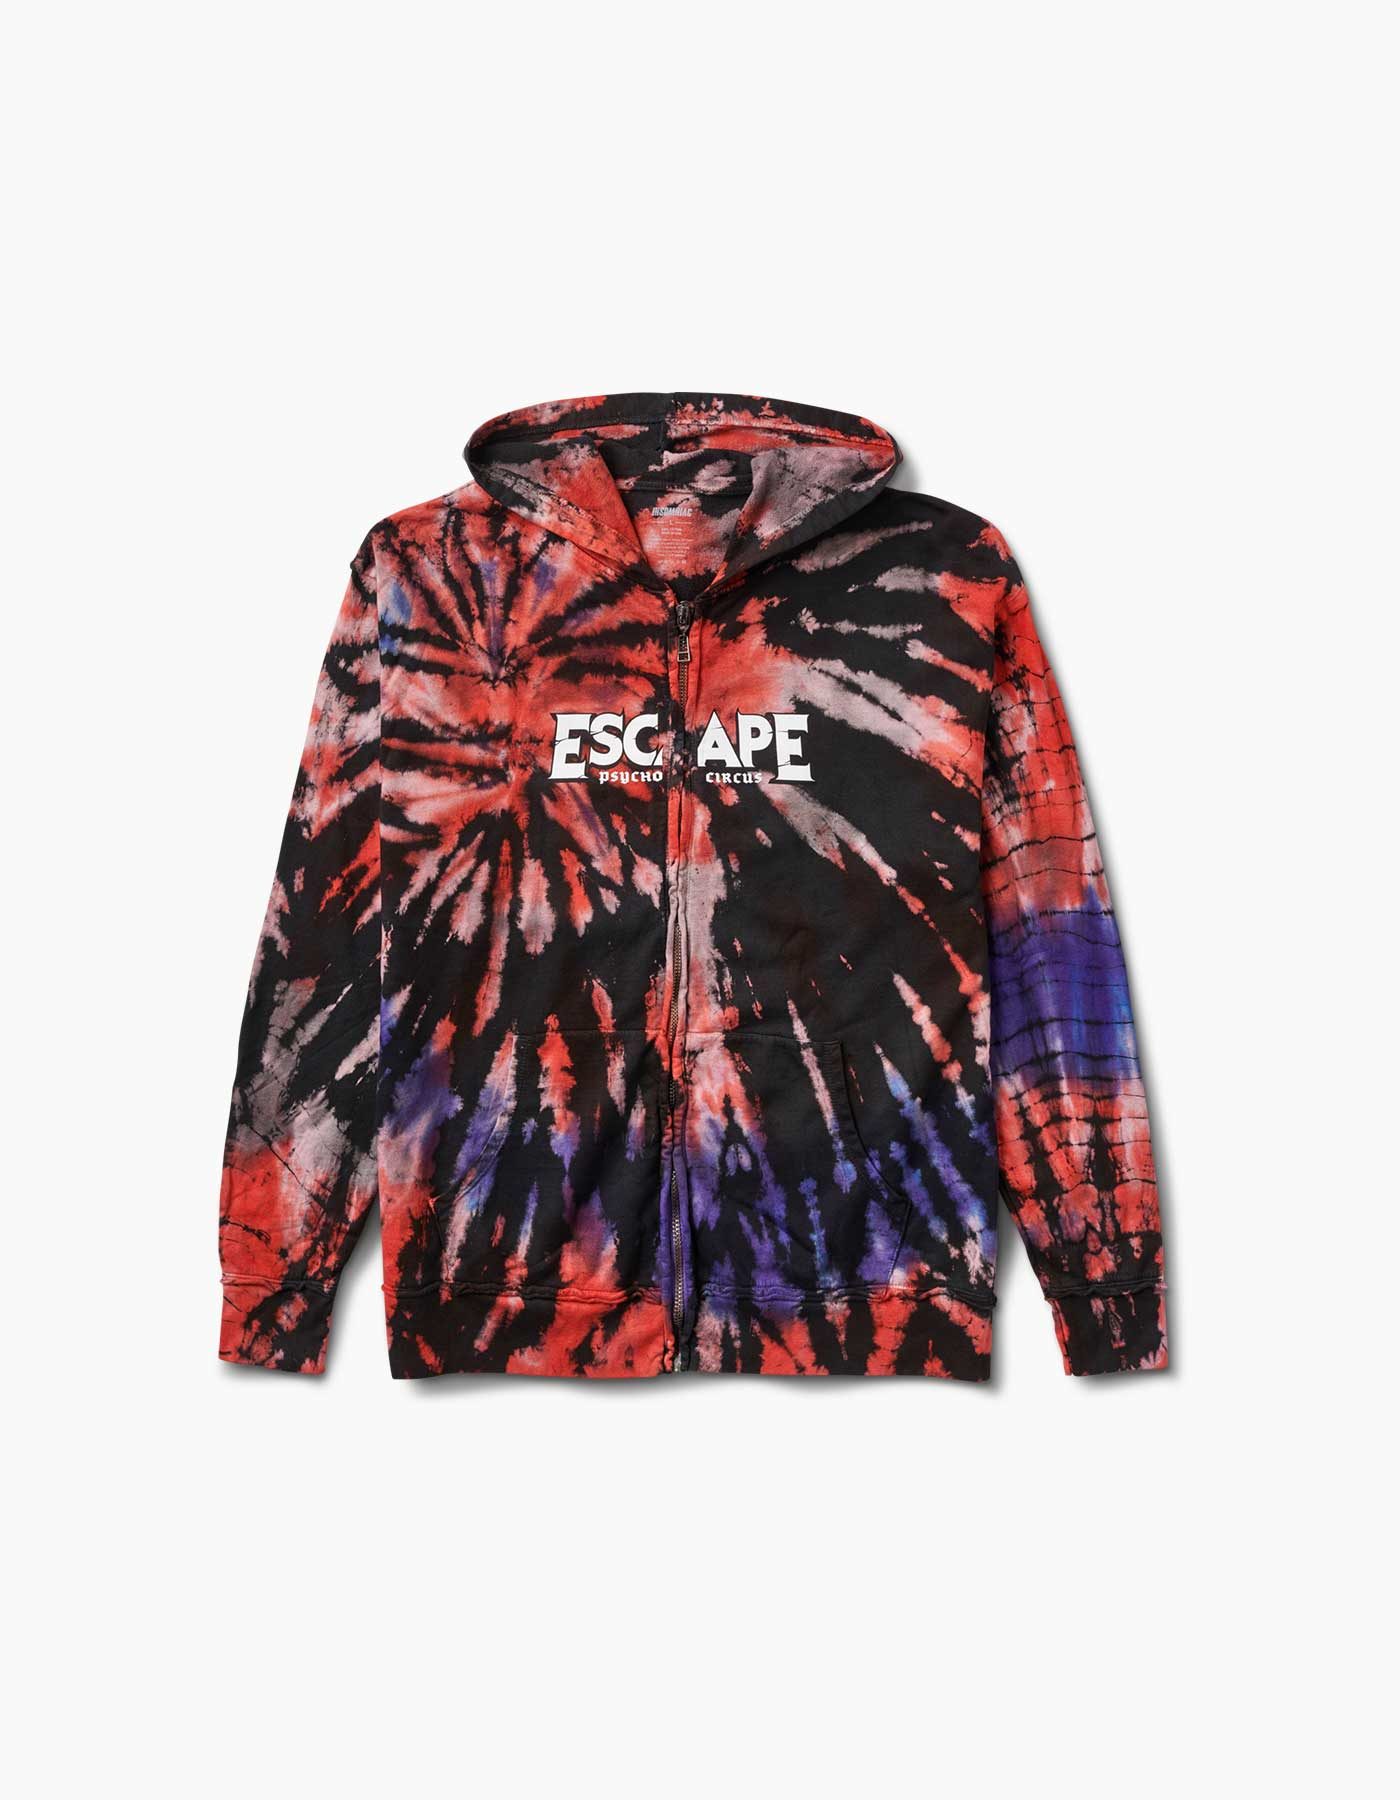 Escape Skully Tie Dye 2018 Line Up Zip Hood